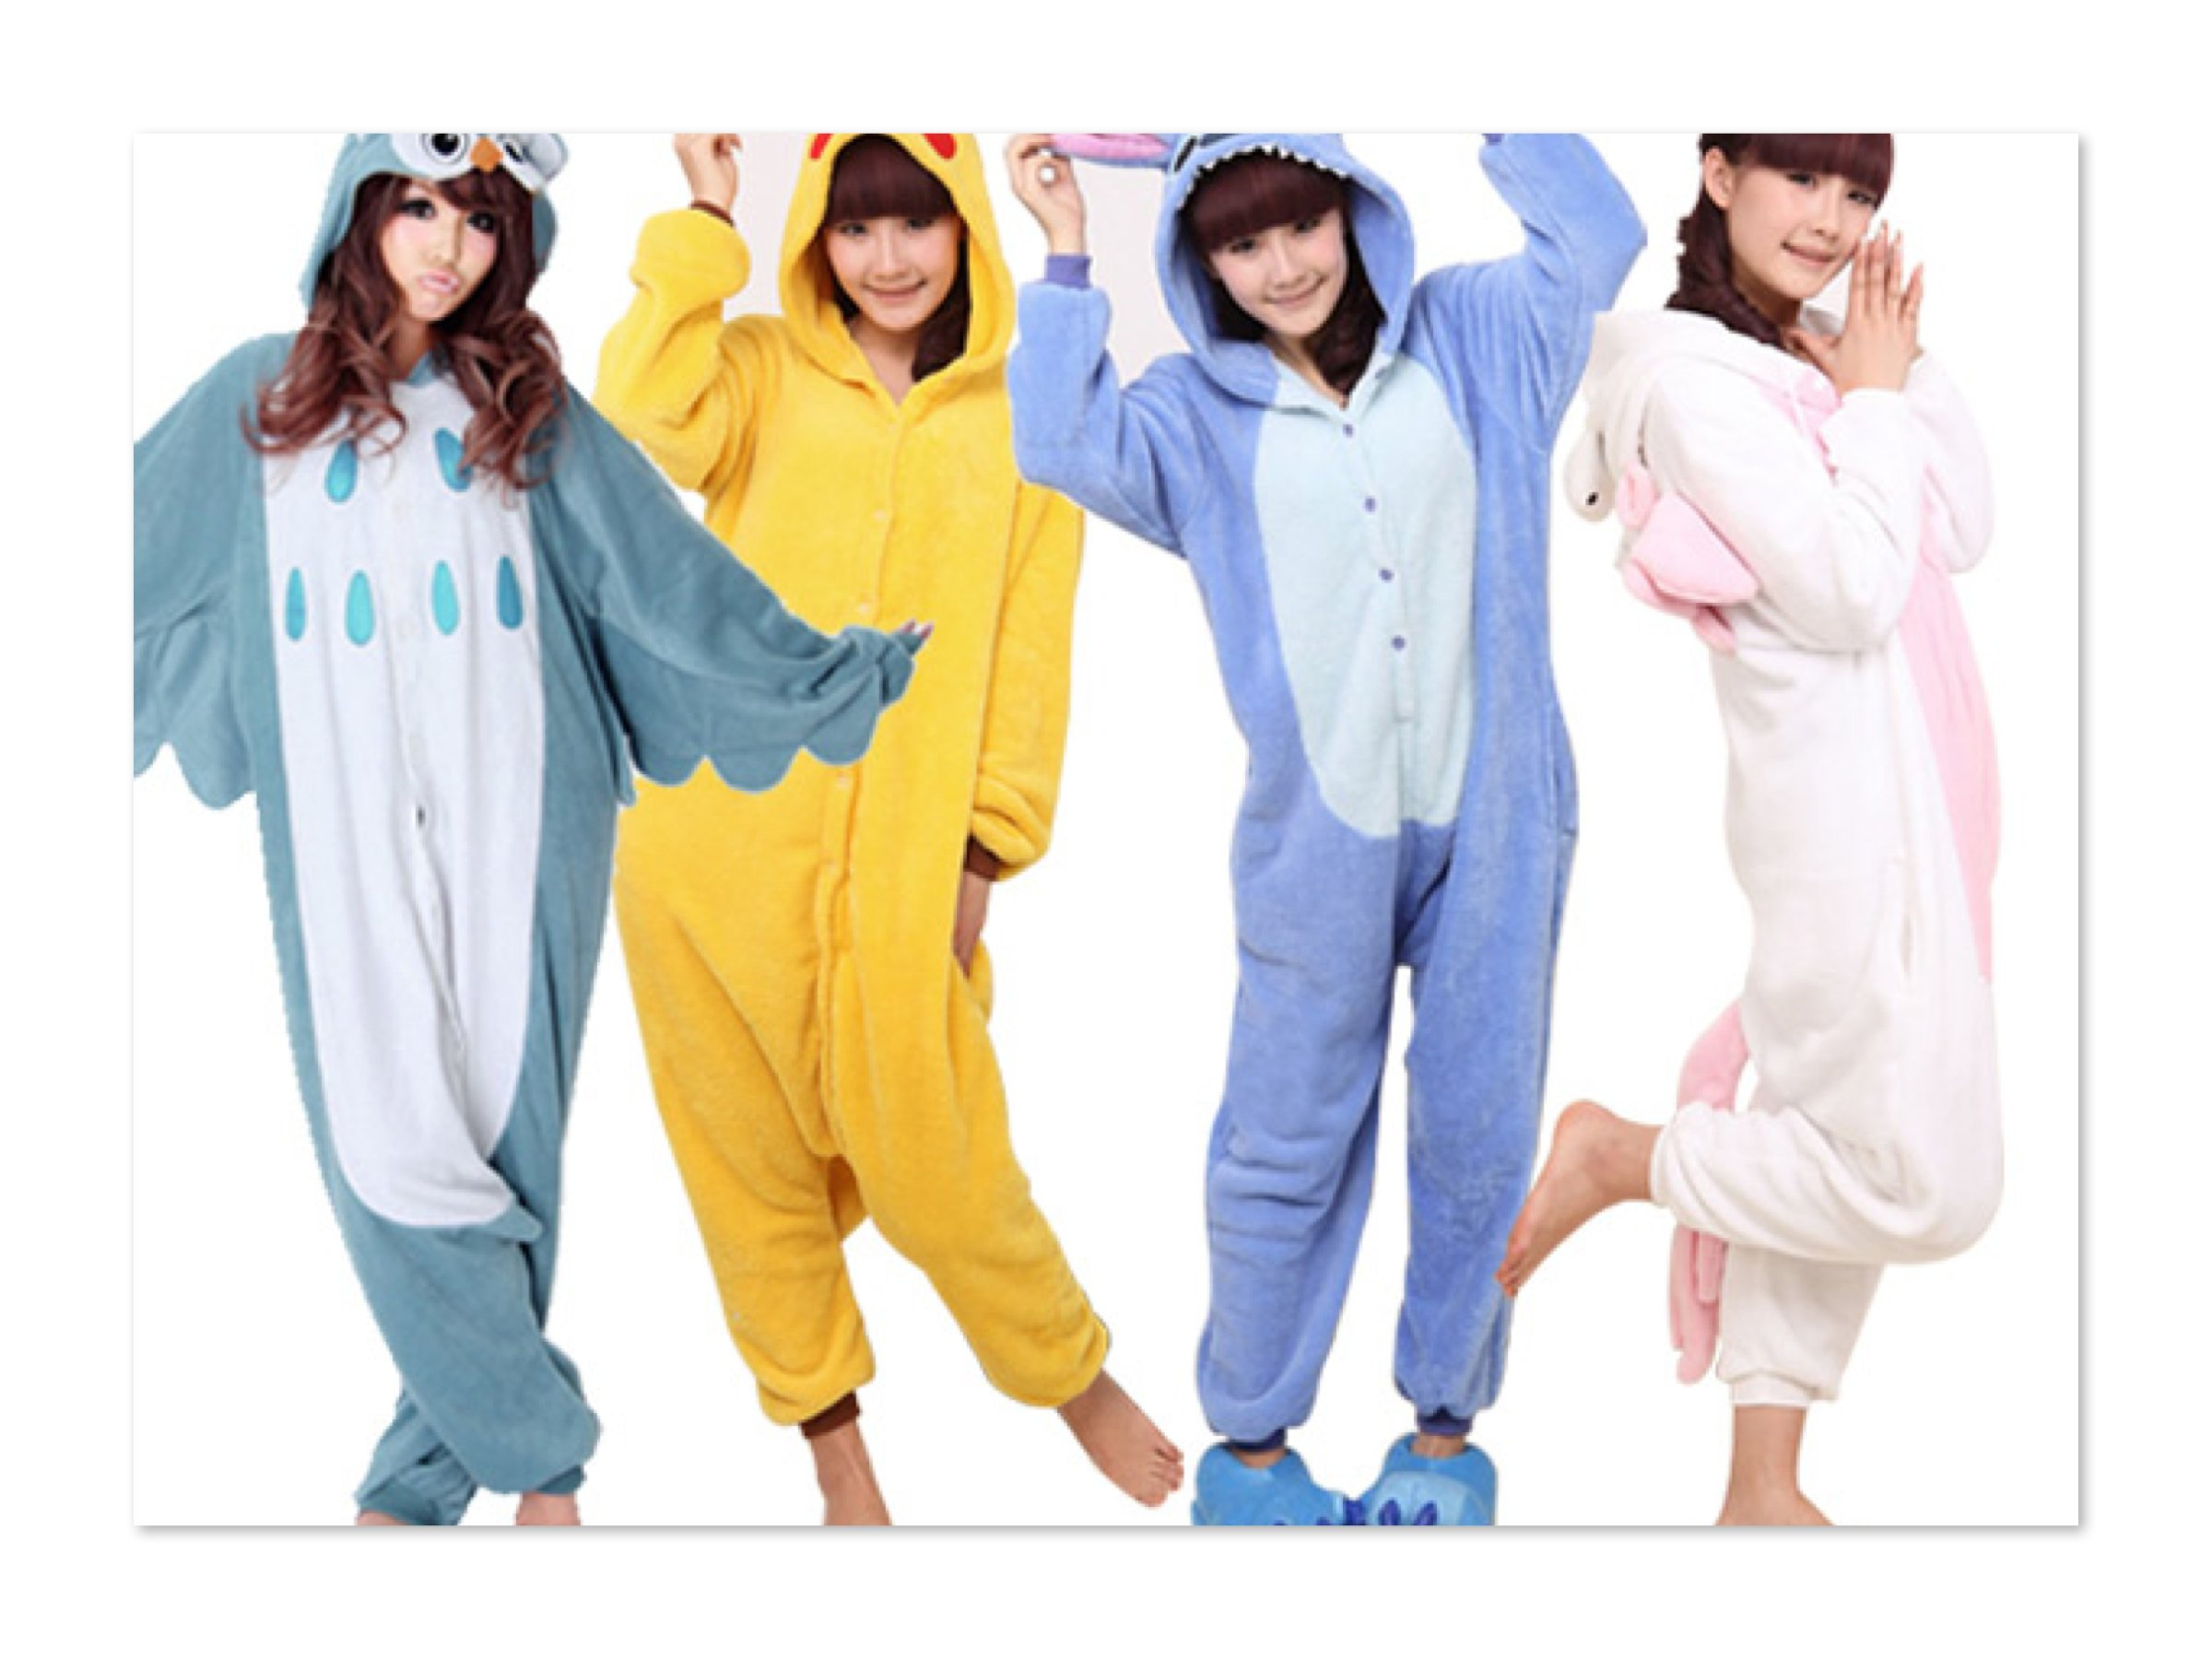 Kigurumi Halloween Costume Party Ideas